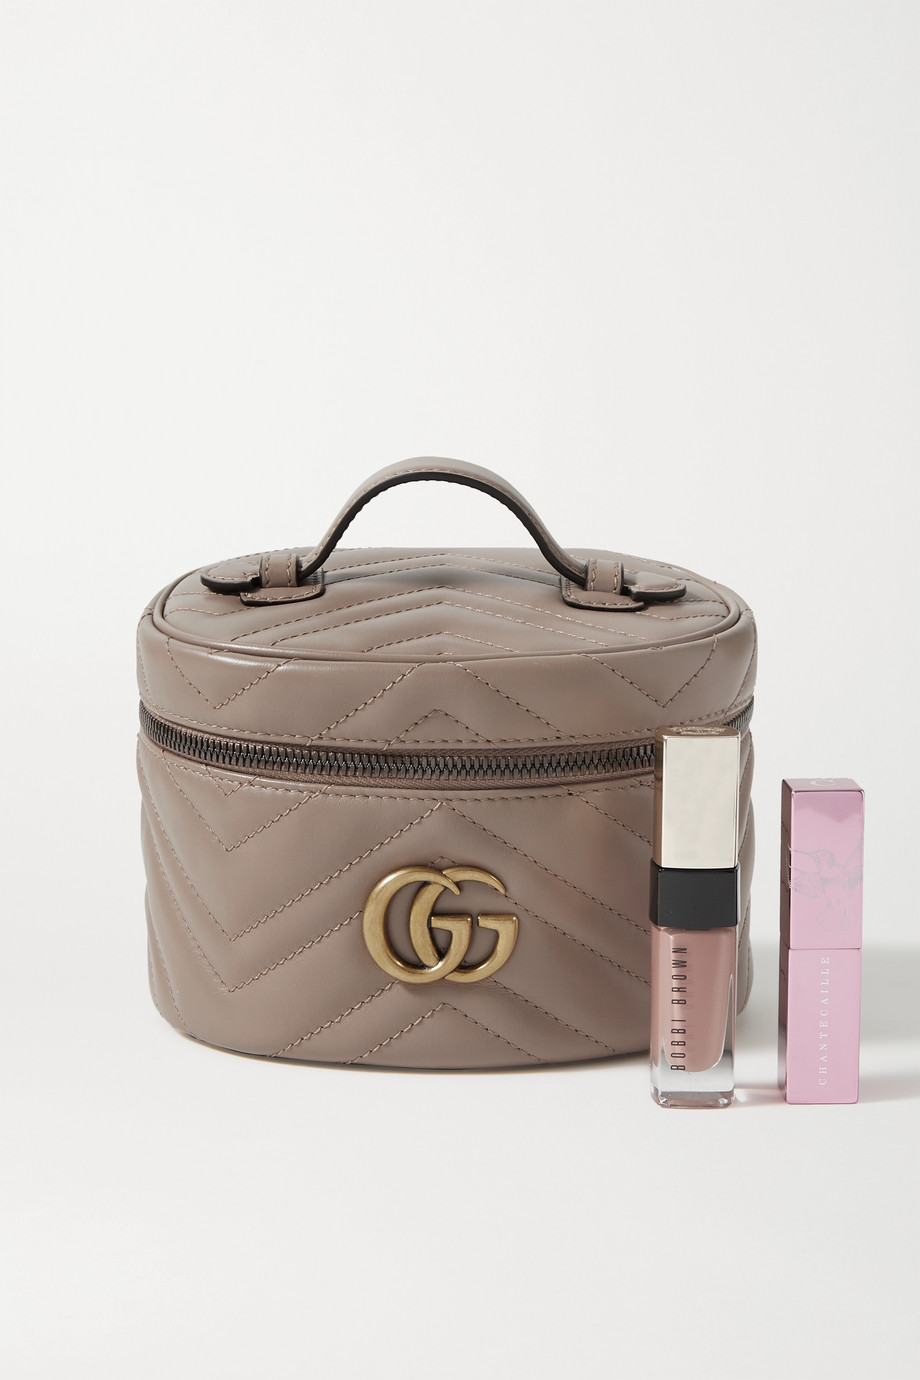 GUCCI GG Marmont mini quilted leather cosmetics case